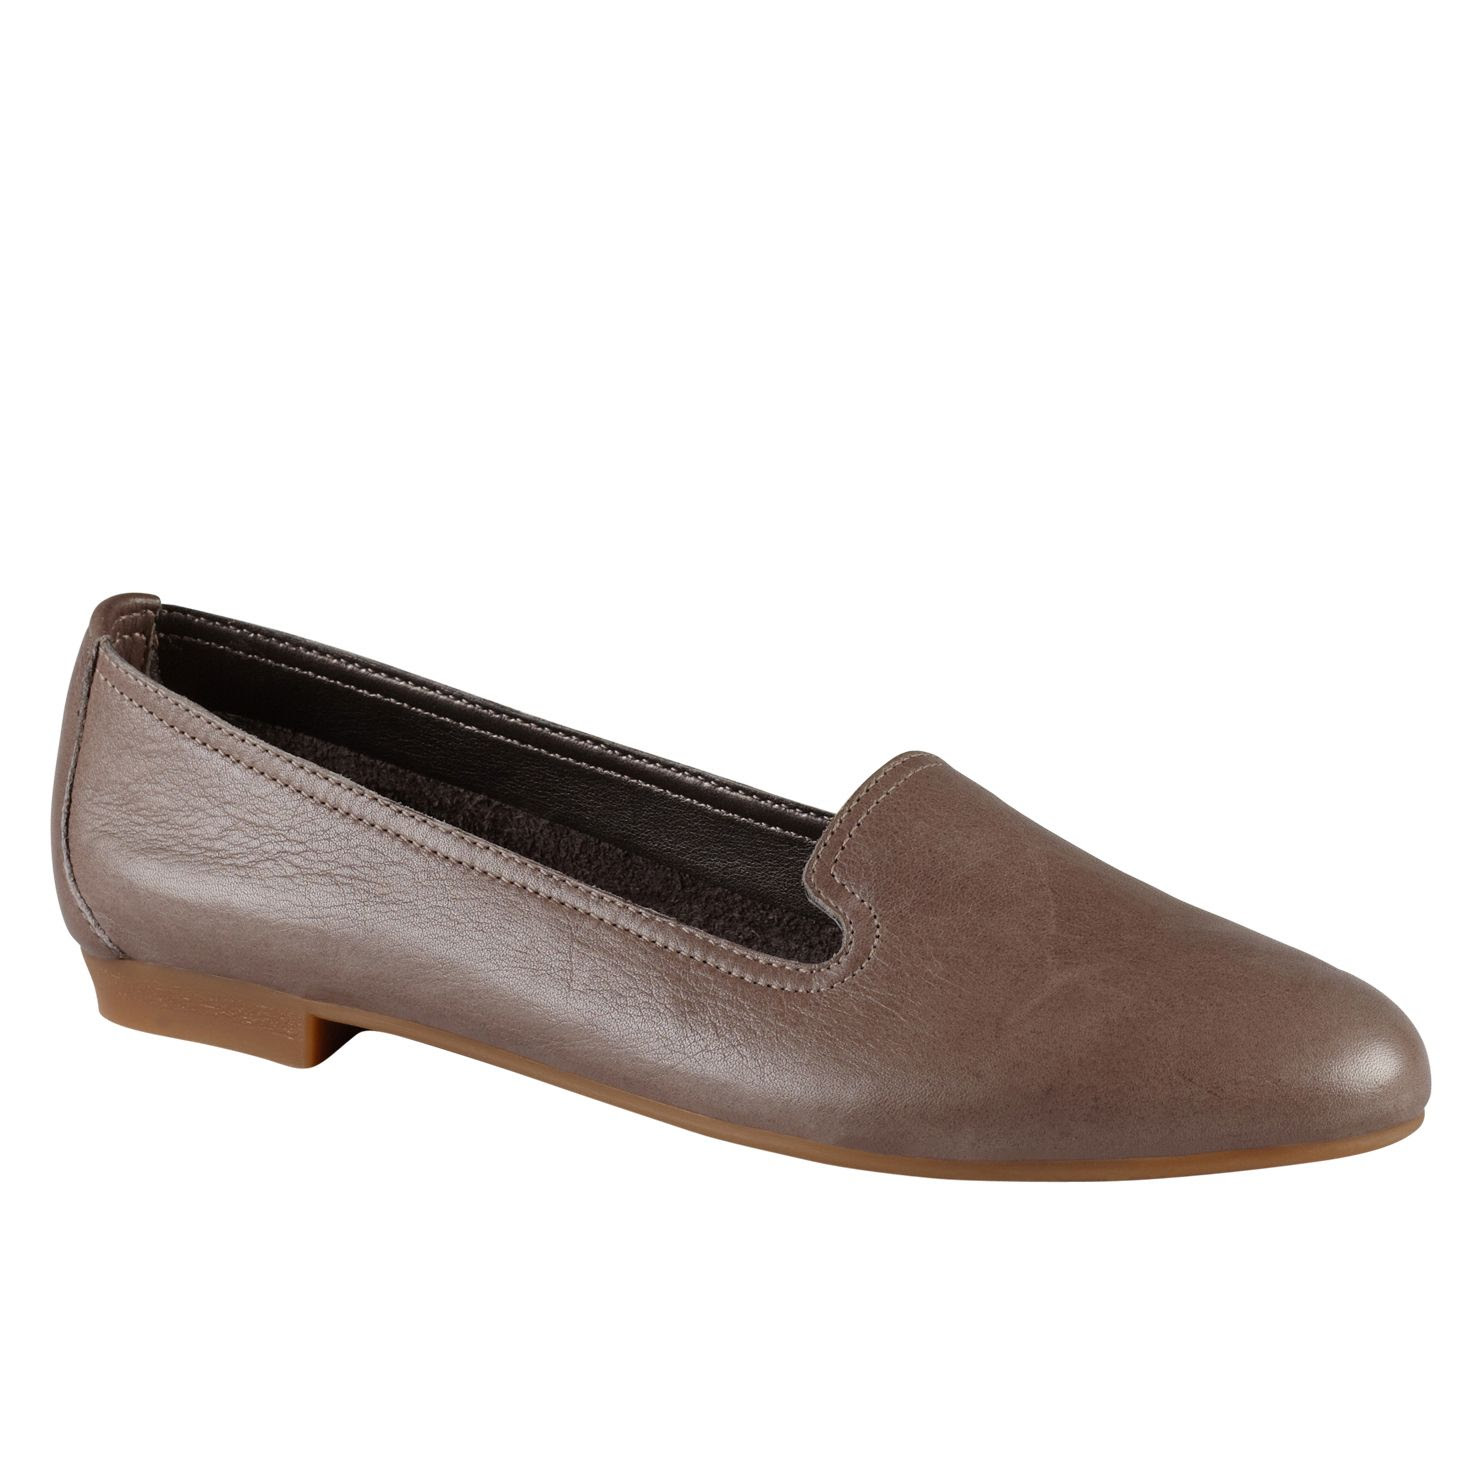 Aldo Zenica Leather Loafer Shoes in Brown (Grey) | Lyst